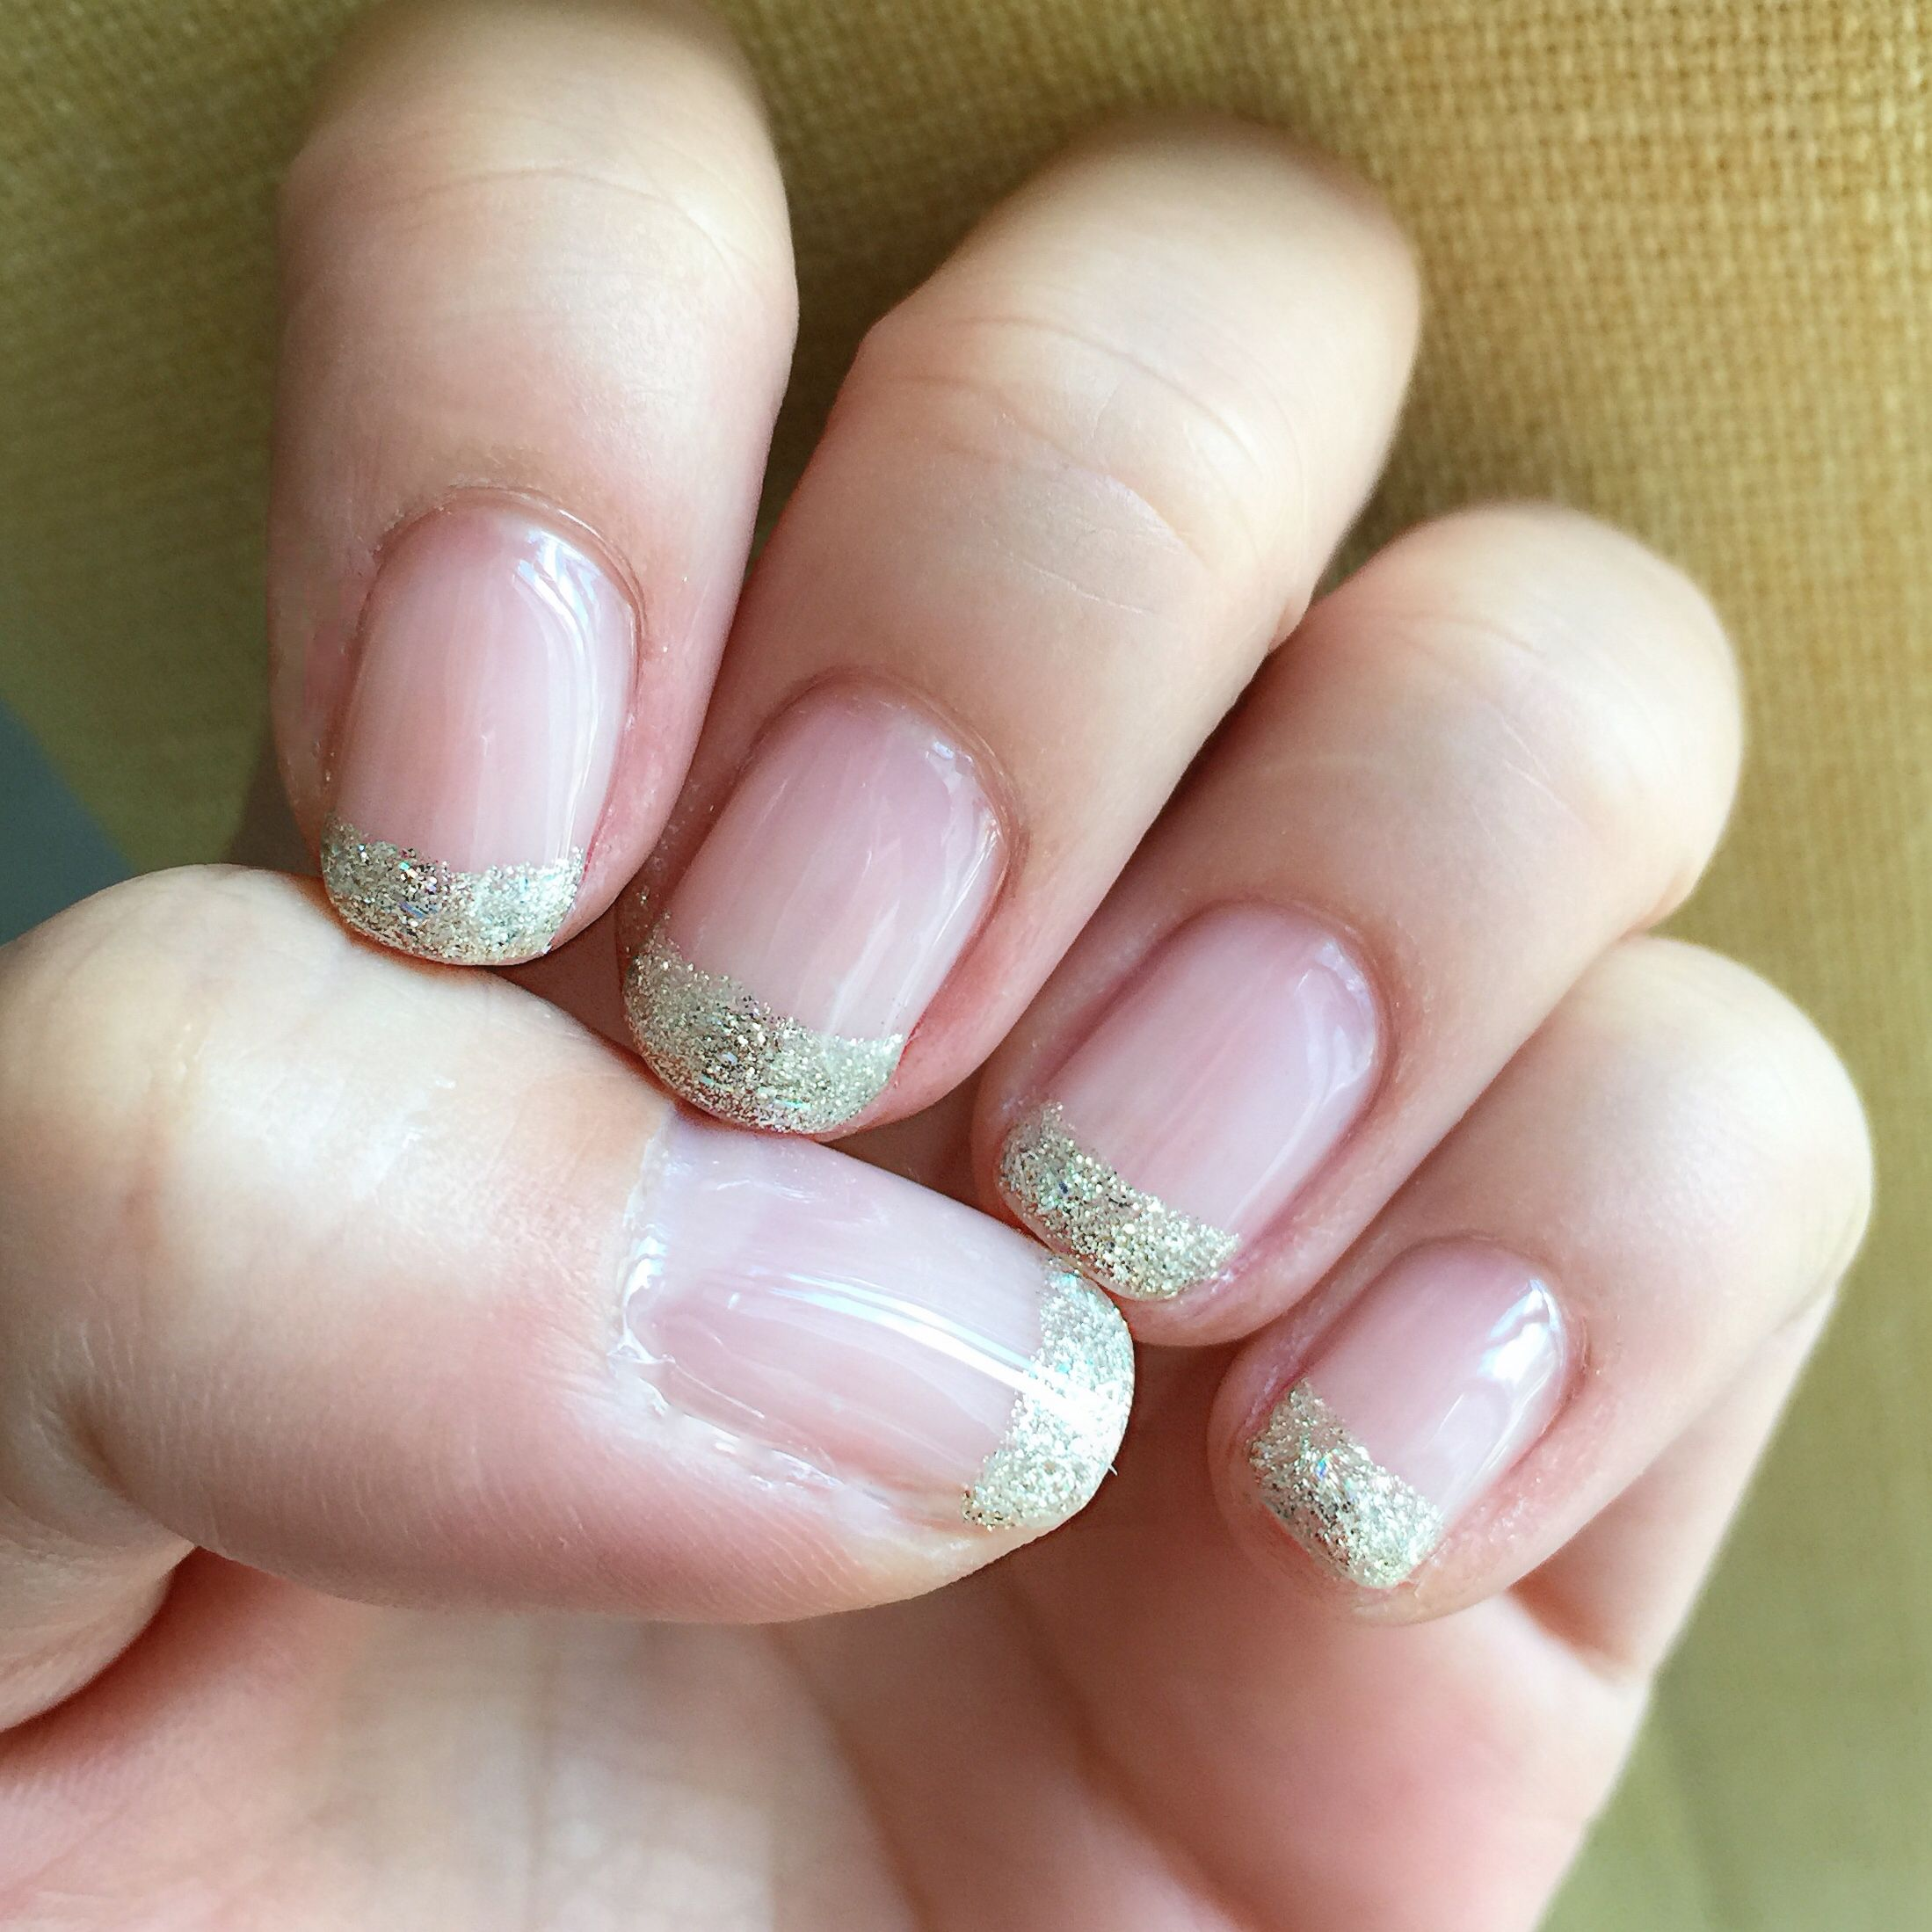 Bling French style | On Yung \'s Nails | Pinterest